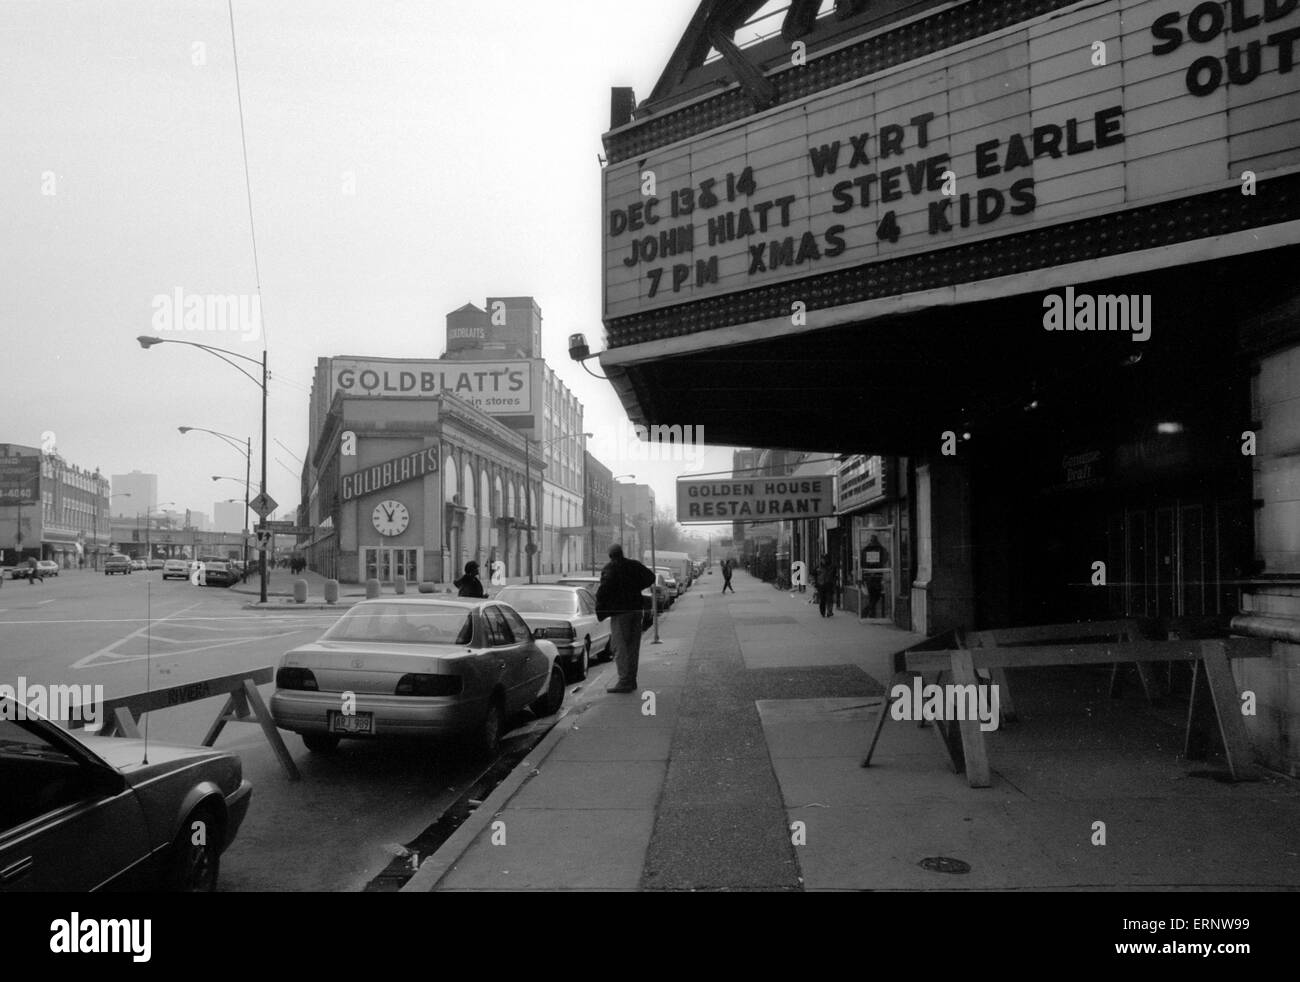 Chicago, IL, 14-Dec-1996: The Riviera Theatre (built 1917), neighboring Golden House Restaurant/House of Pancakes - Stock Image